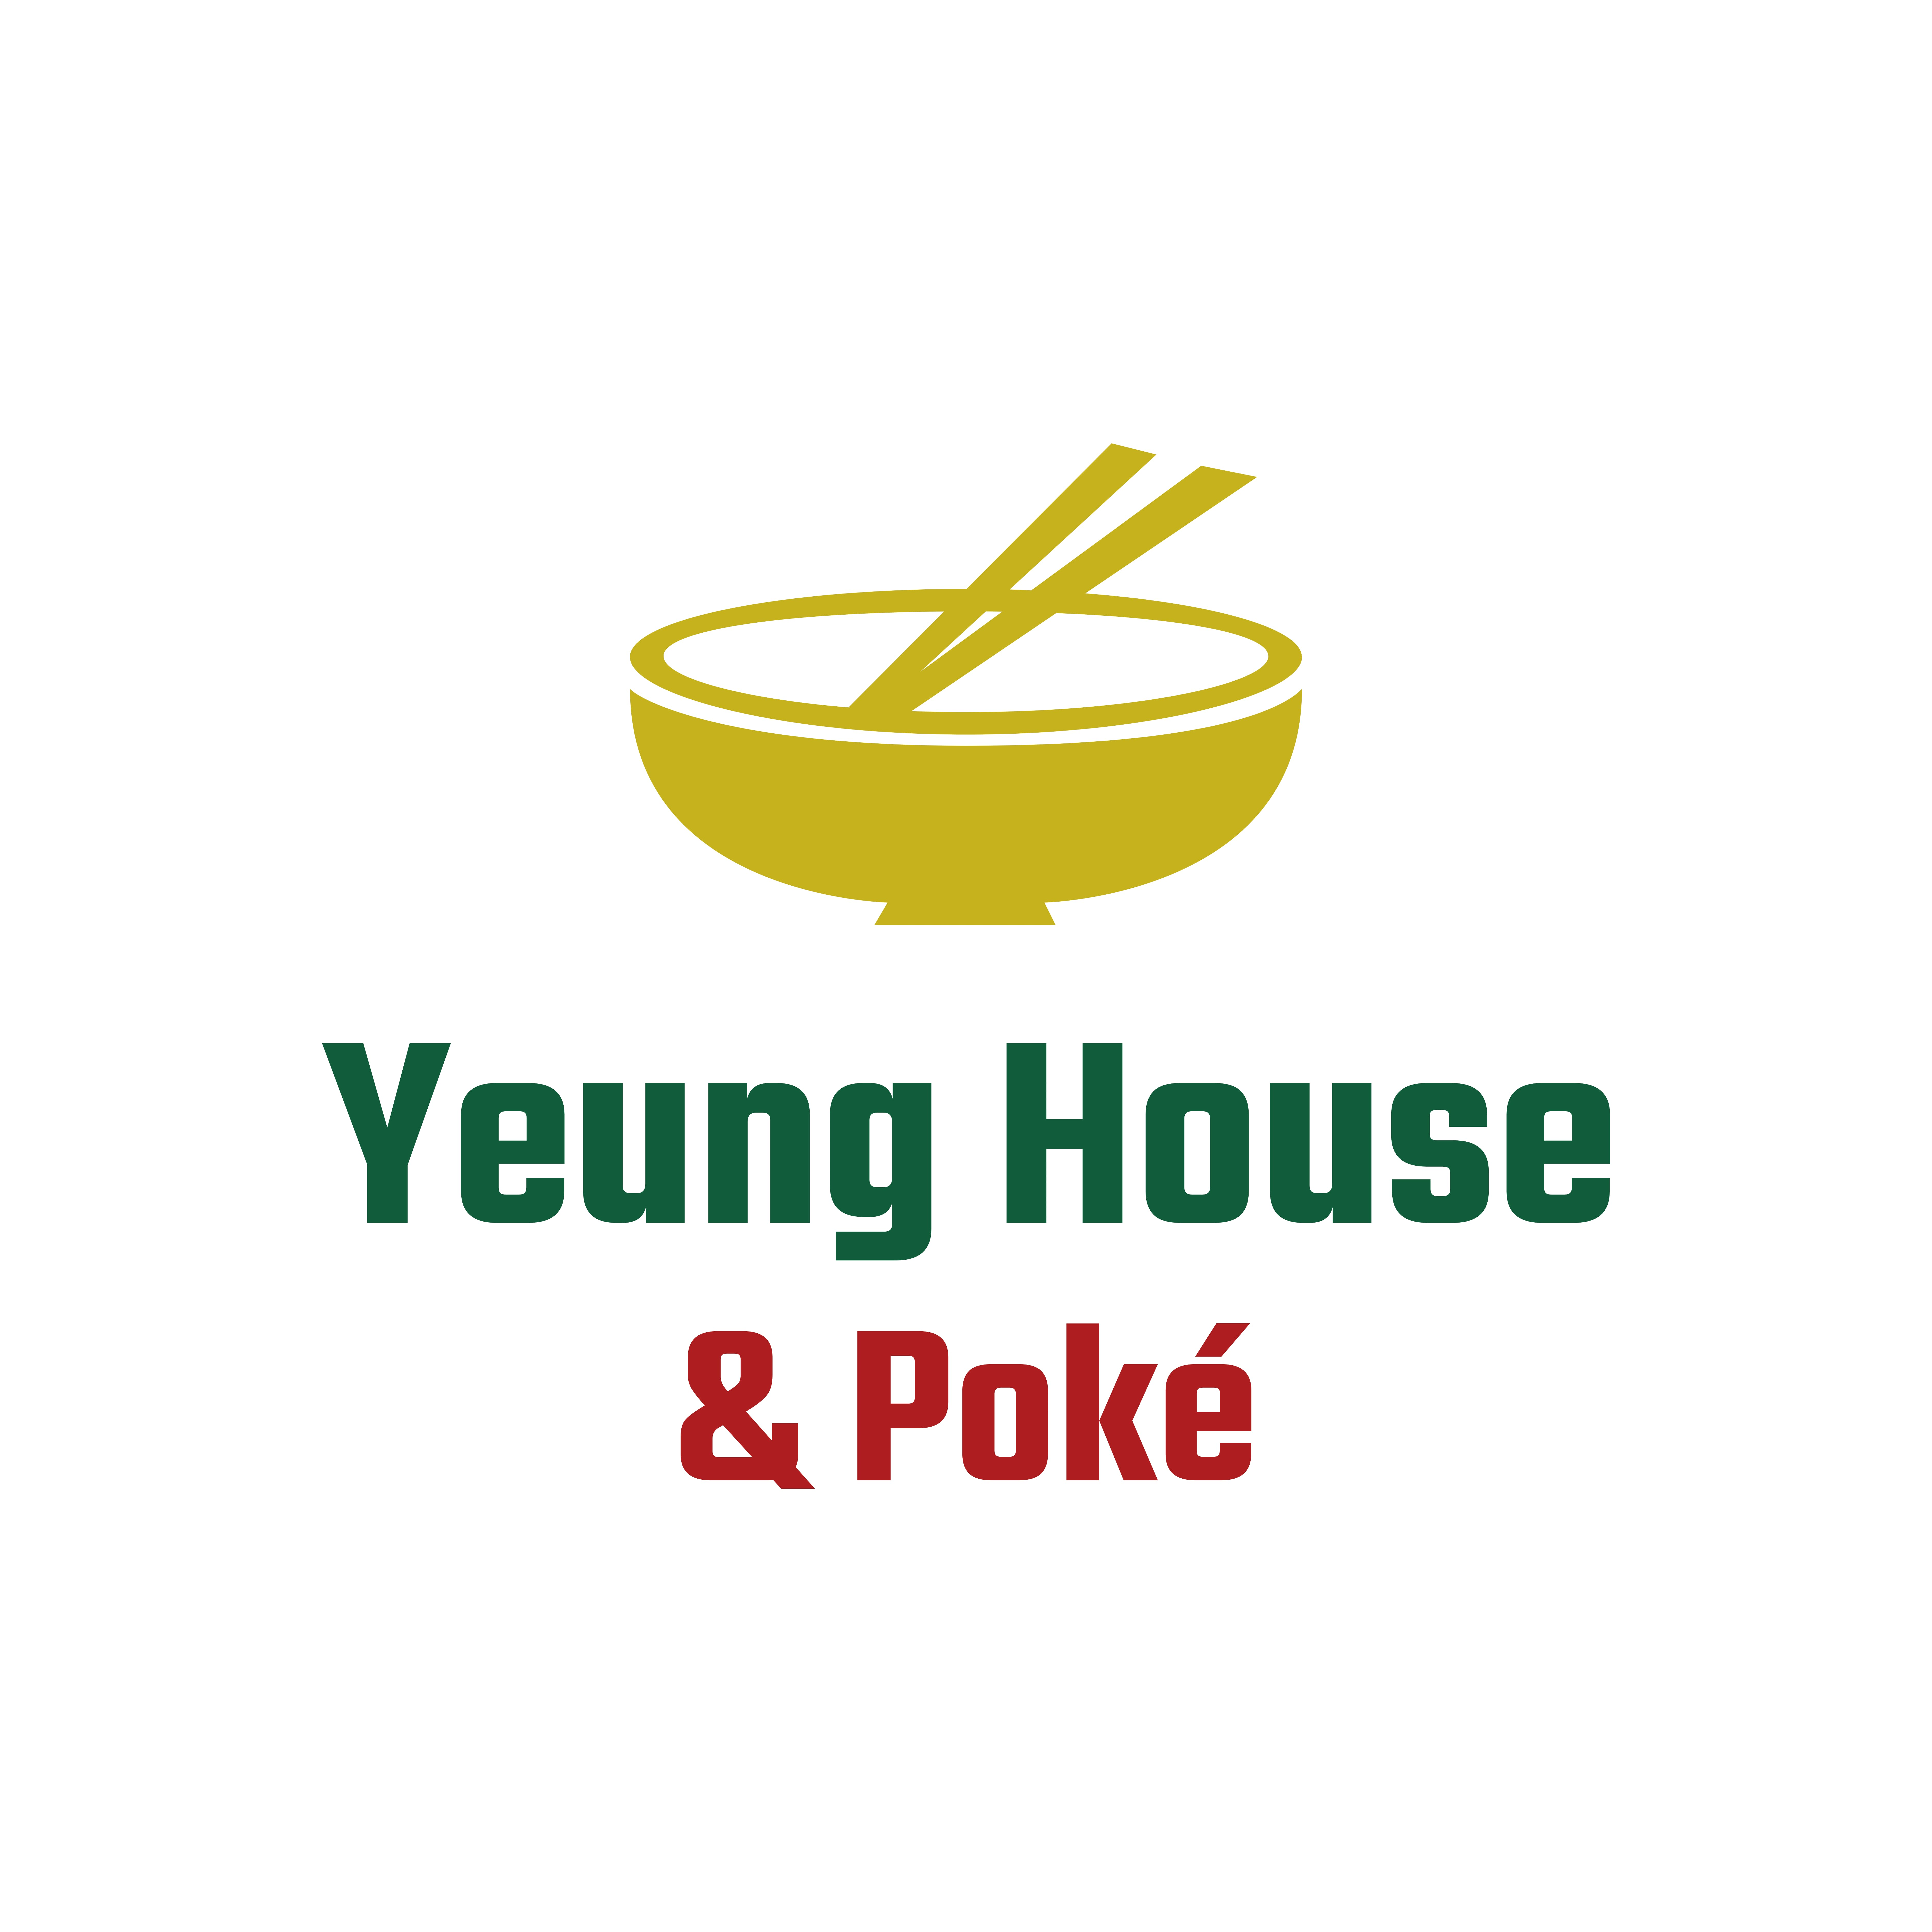 Yeung House & Poke Menu and Takeout in Fort Lauderdale FL, 33305